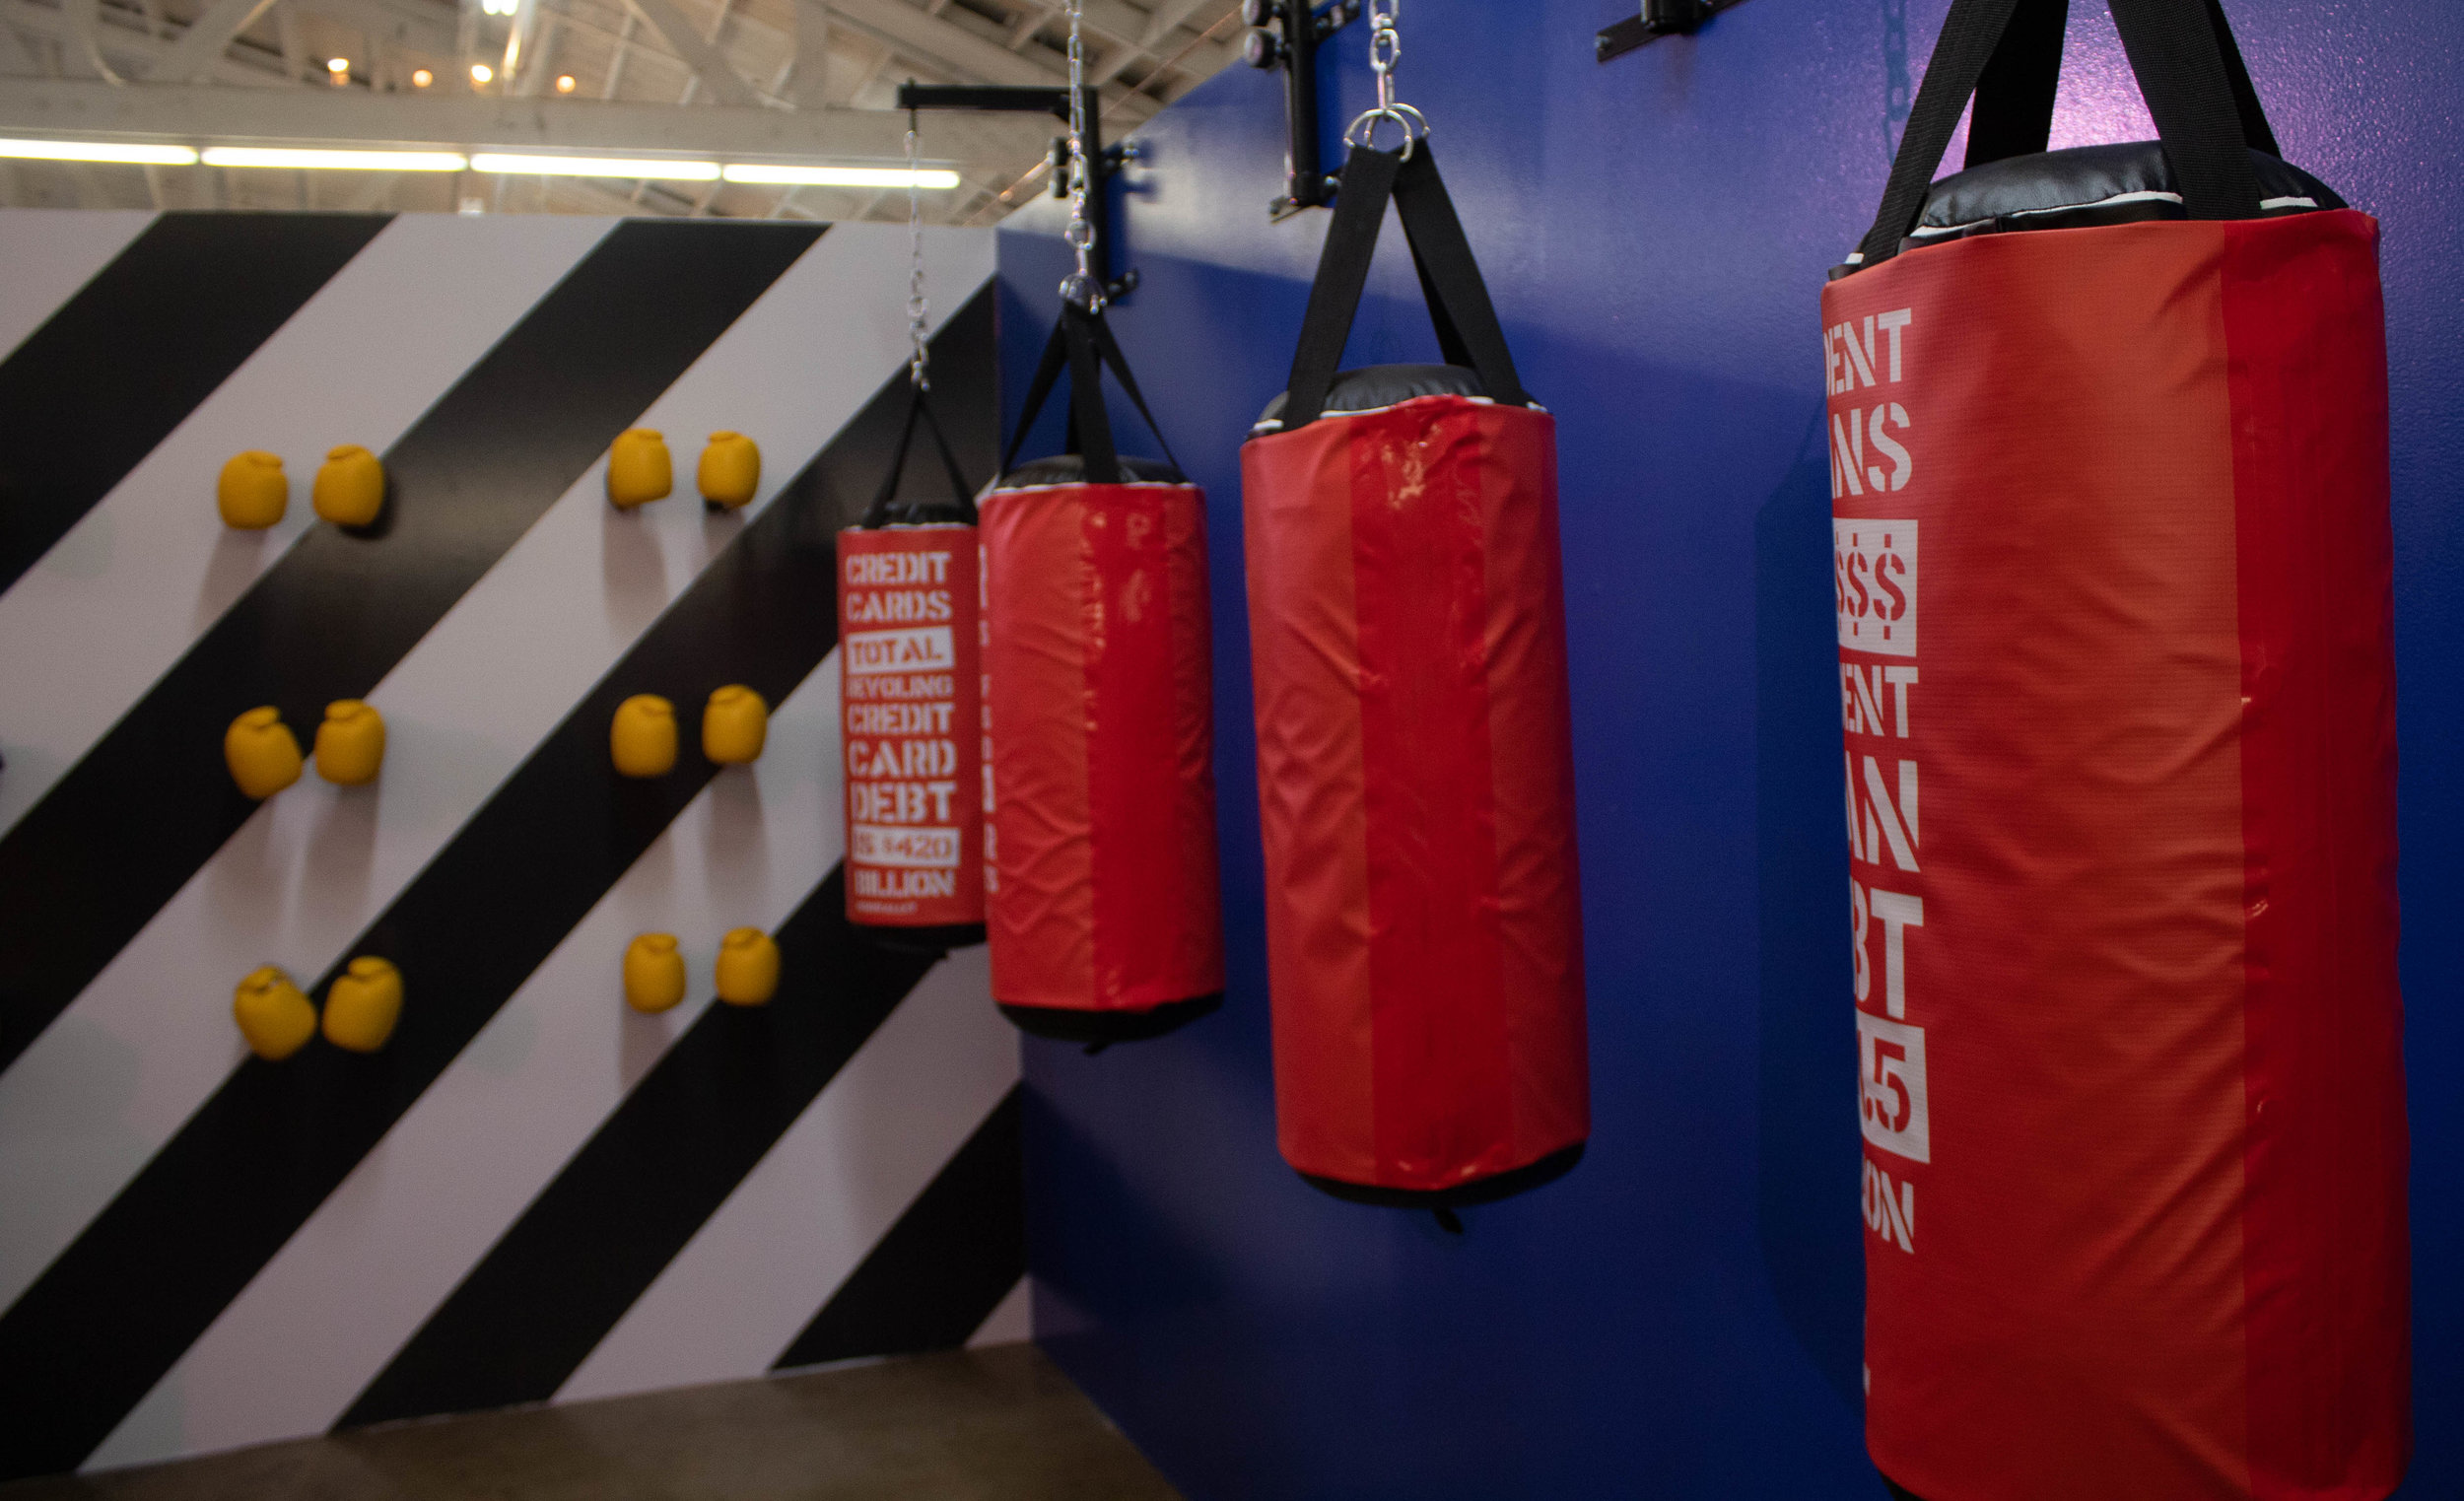 "Stacks House's ""Debt Boxing Gym,"" the opening photo-op room in the new walk-through pop up experience. Stacks House teaches on subjects such as financial literacy through rooms like this one. April 16, 2019, Los Angeles, California. Danica Creahan / The Corsair"